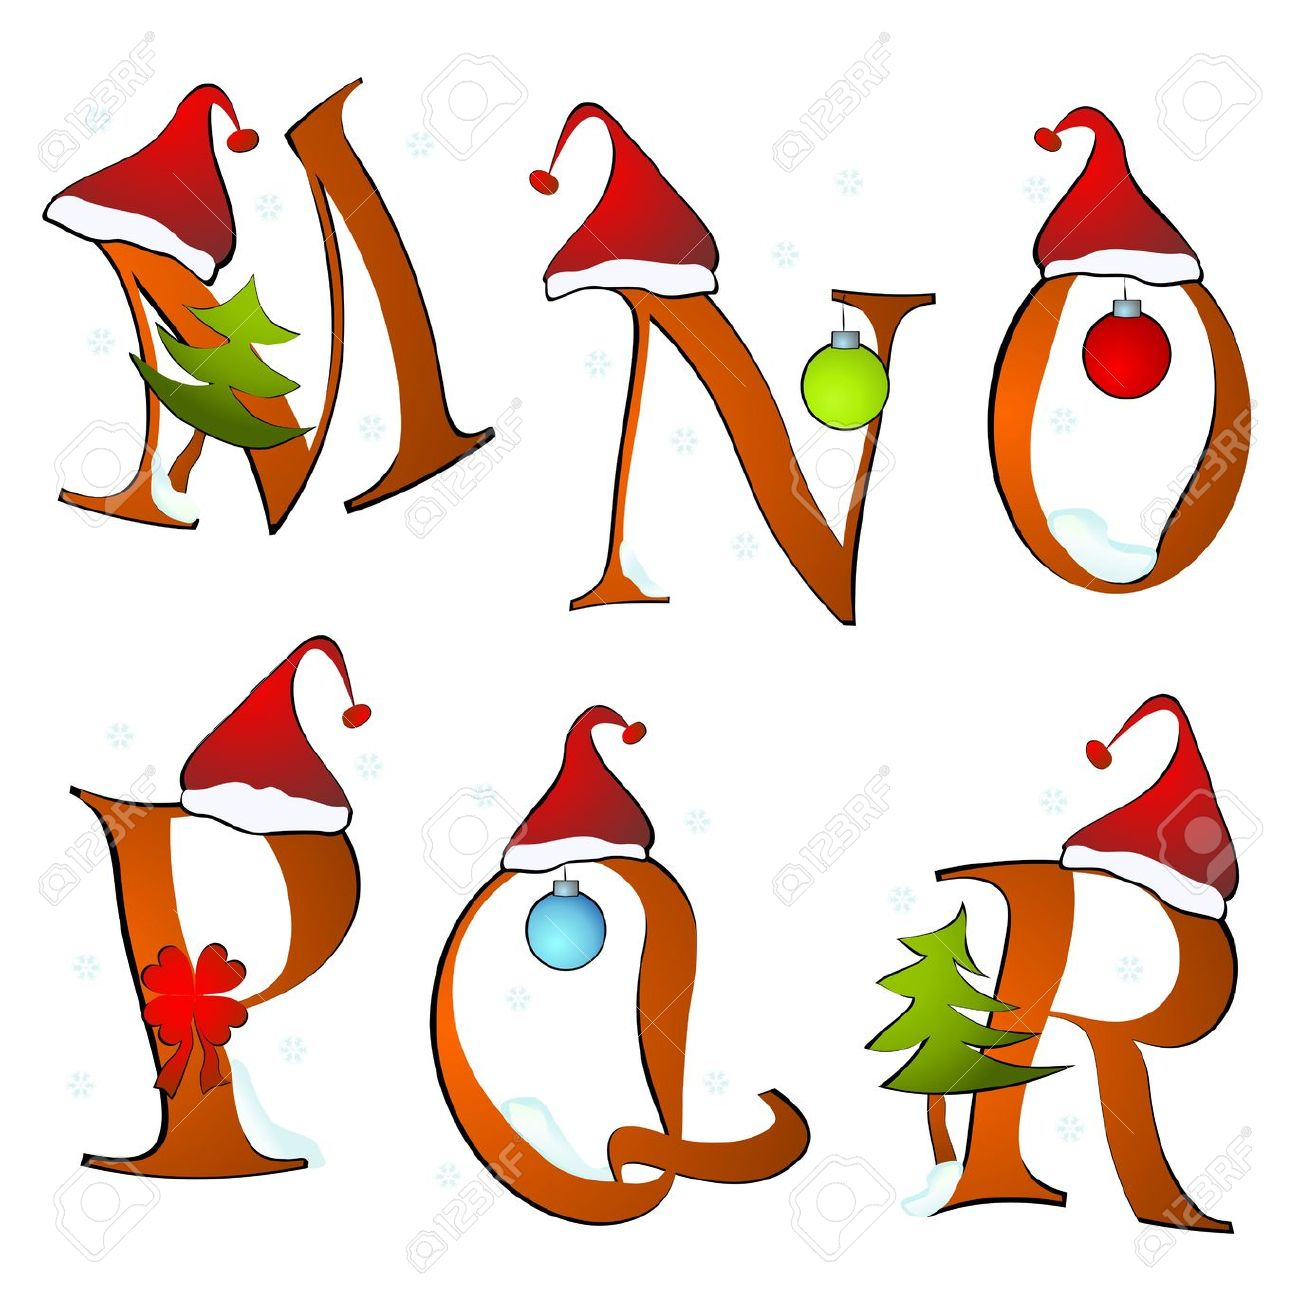 Christmas alphabet clip art free royalty free library Christmas alphabet clip art free - ClipartFest royalty free library